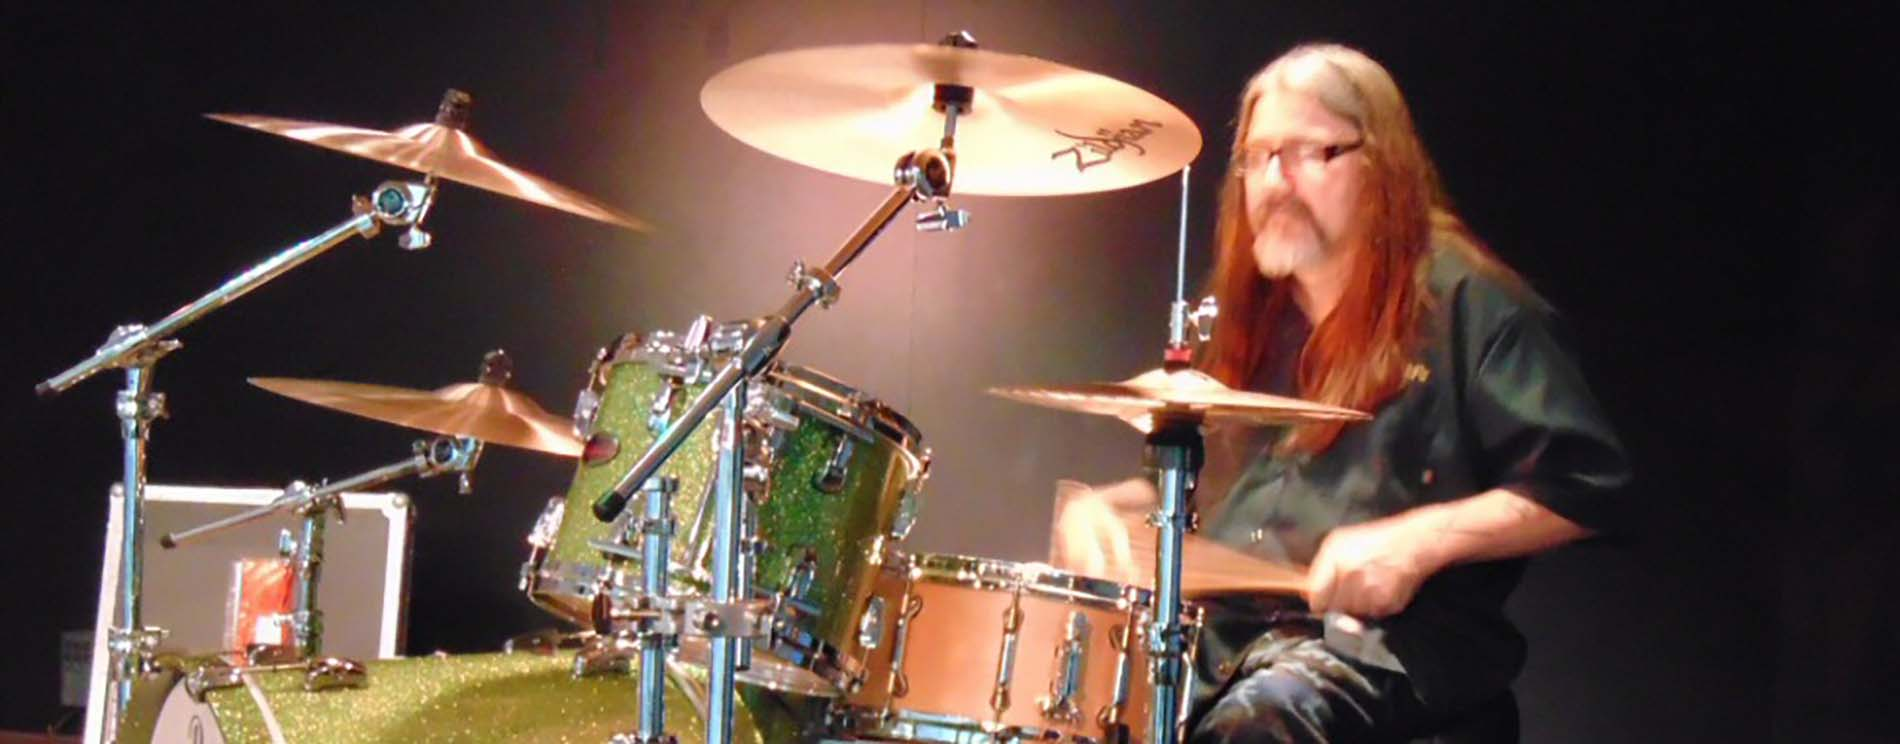 Andrew Hewitt - Sydney Drummer and Educator | Drum Lessons